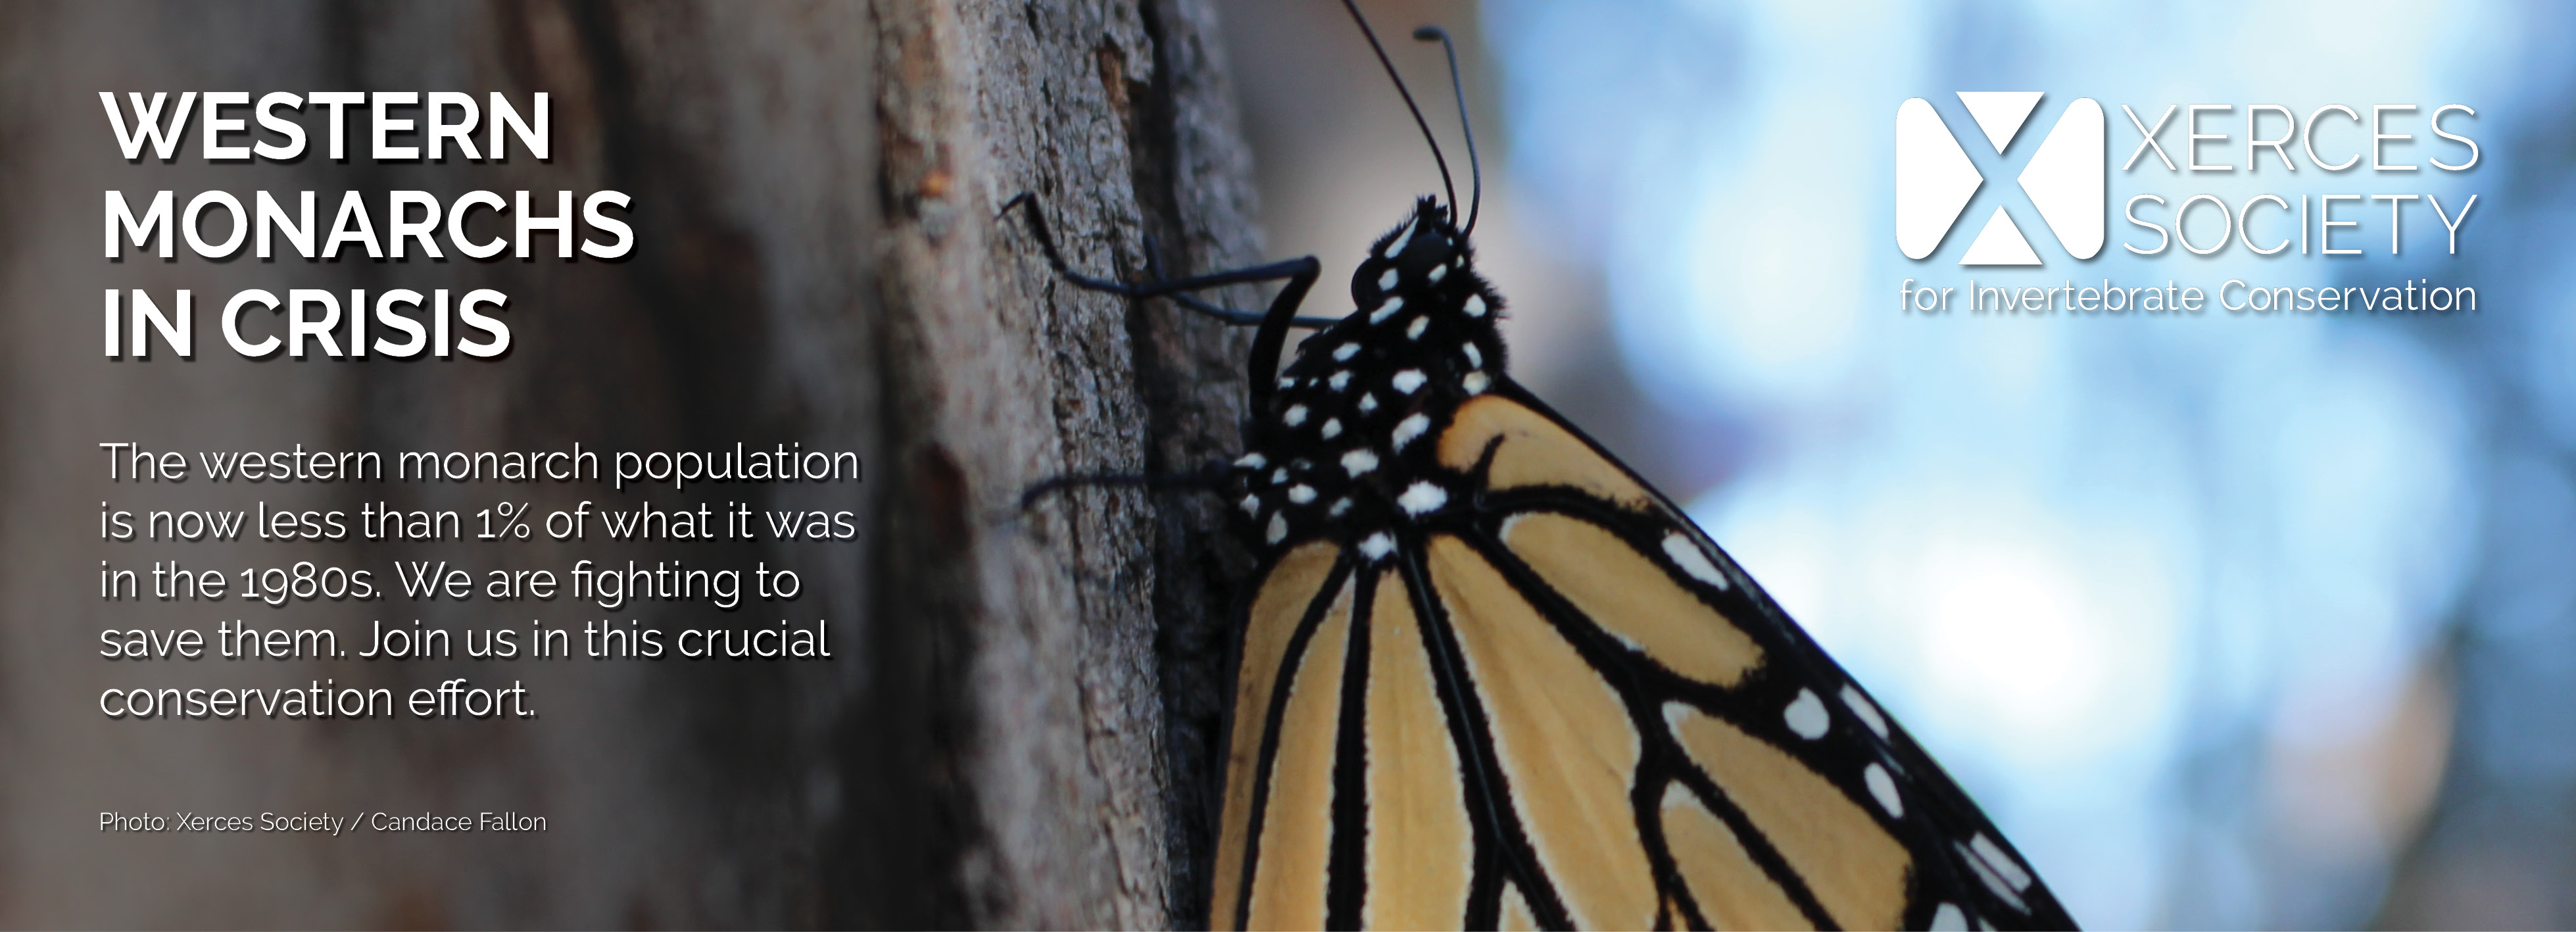 This banner, featuring a monarch clutching a tree trunk in a dimly-lit scene, says: Western Monarchs in Crisis: The western monarch population is now less than 1% of what it was in the 1980s. We are fighting to save them. Join us in this crucial conservation effort.